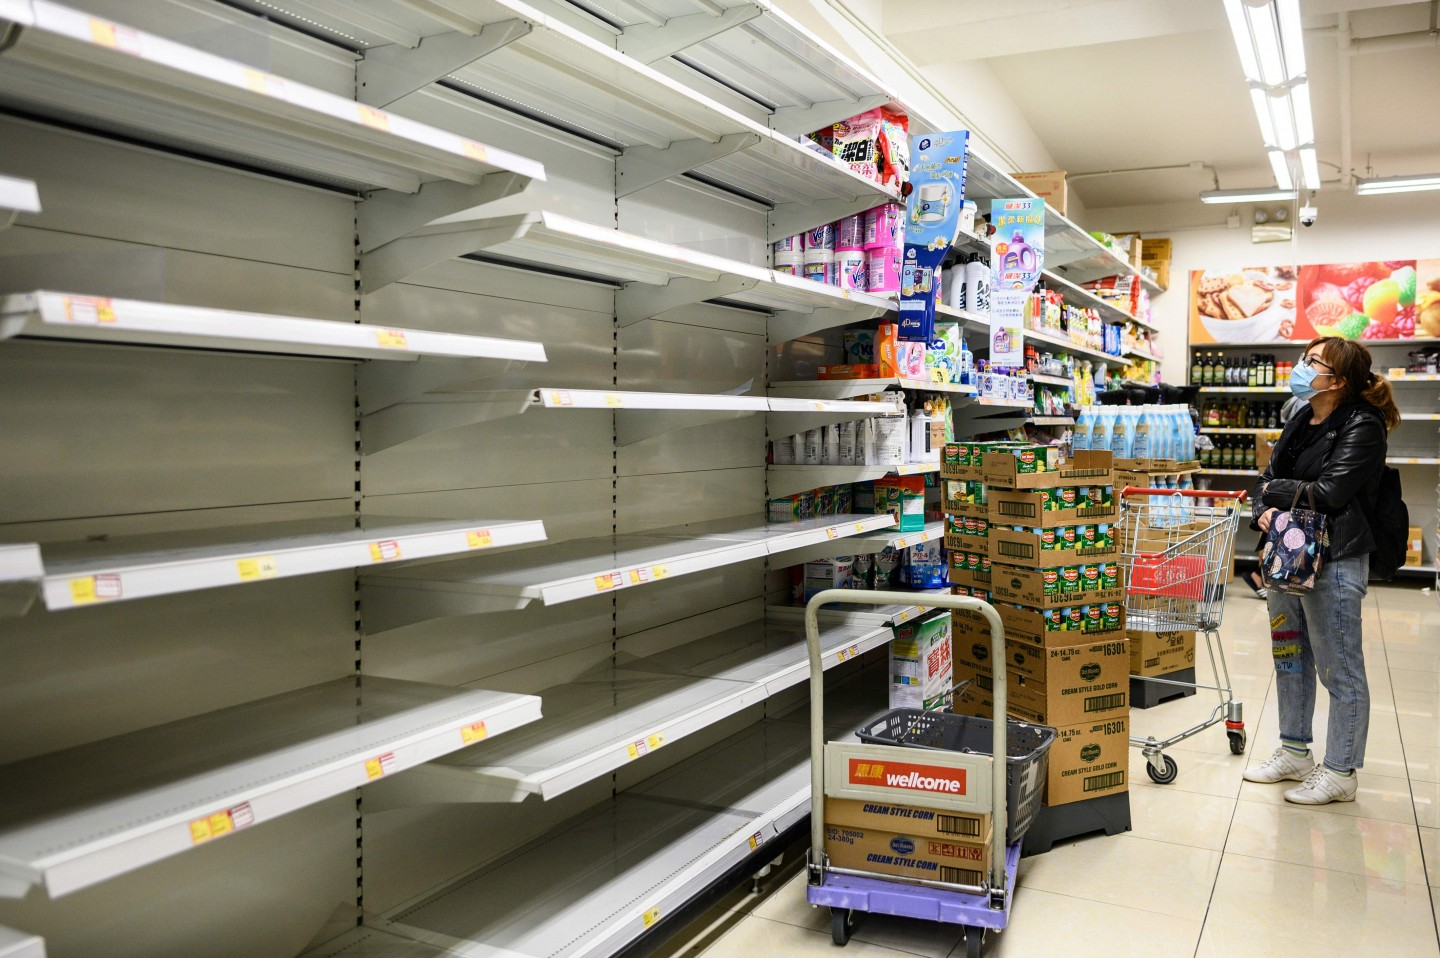 A photo taken on 5 February 2020 shows empty supermarket shelves used for stacking paper towels in Hong Kong. (Philip Fong/AFP)